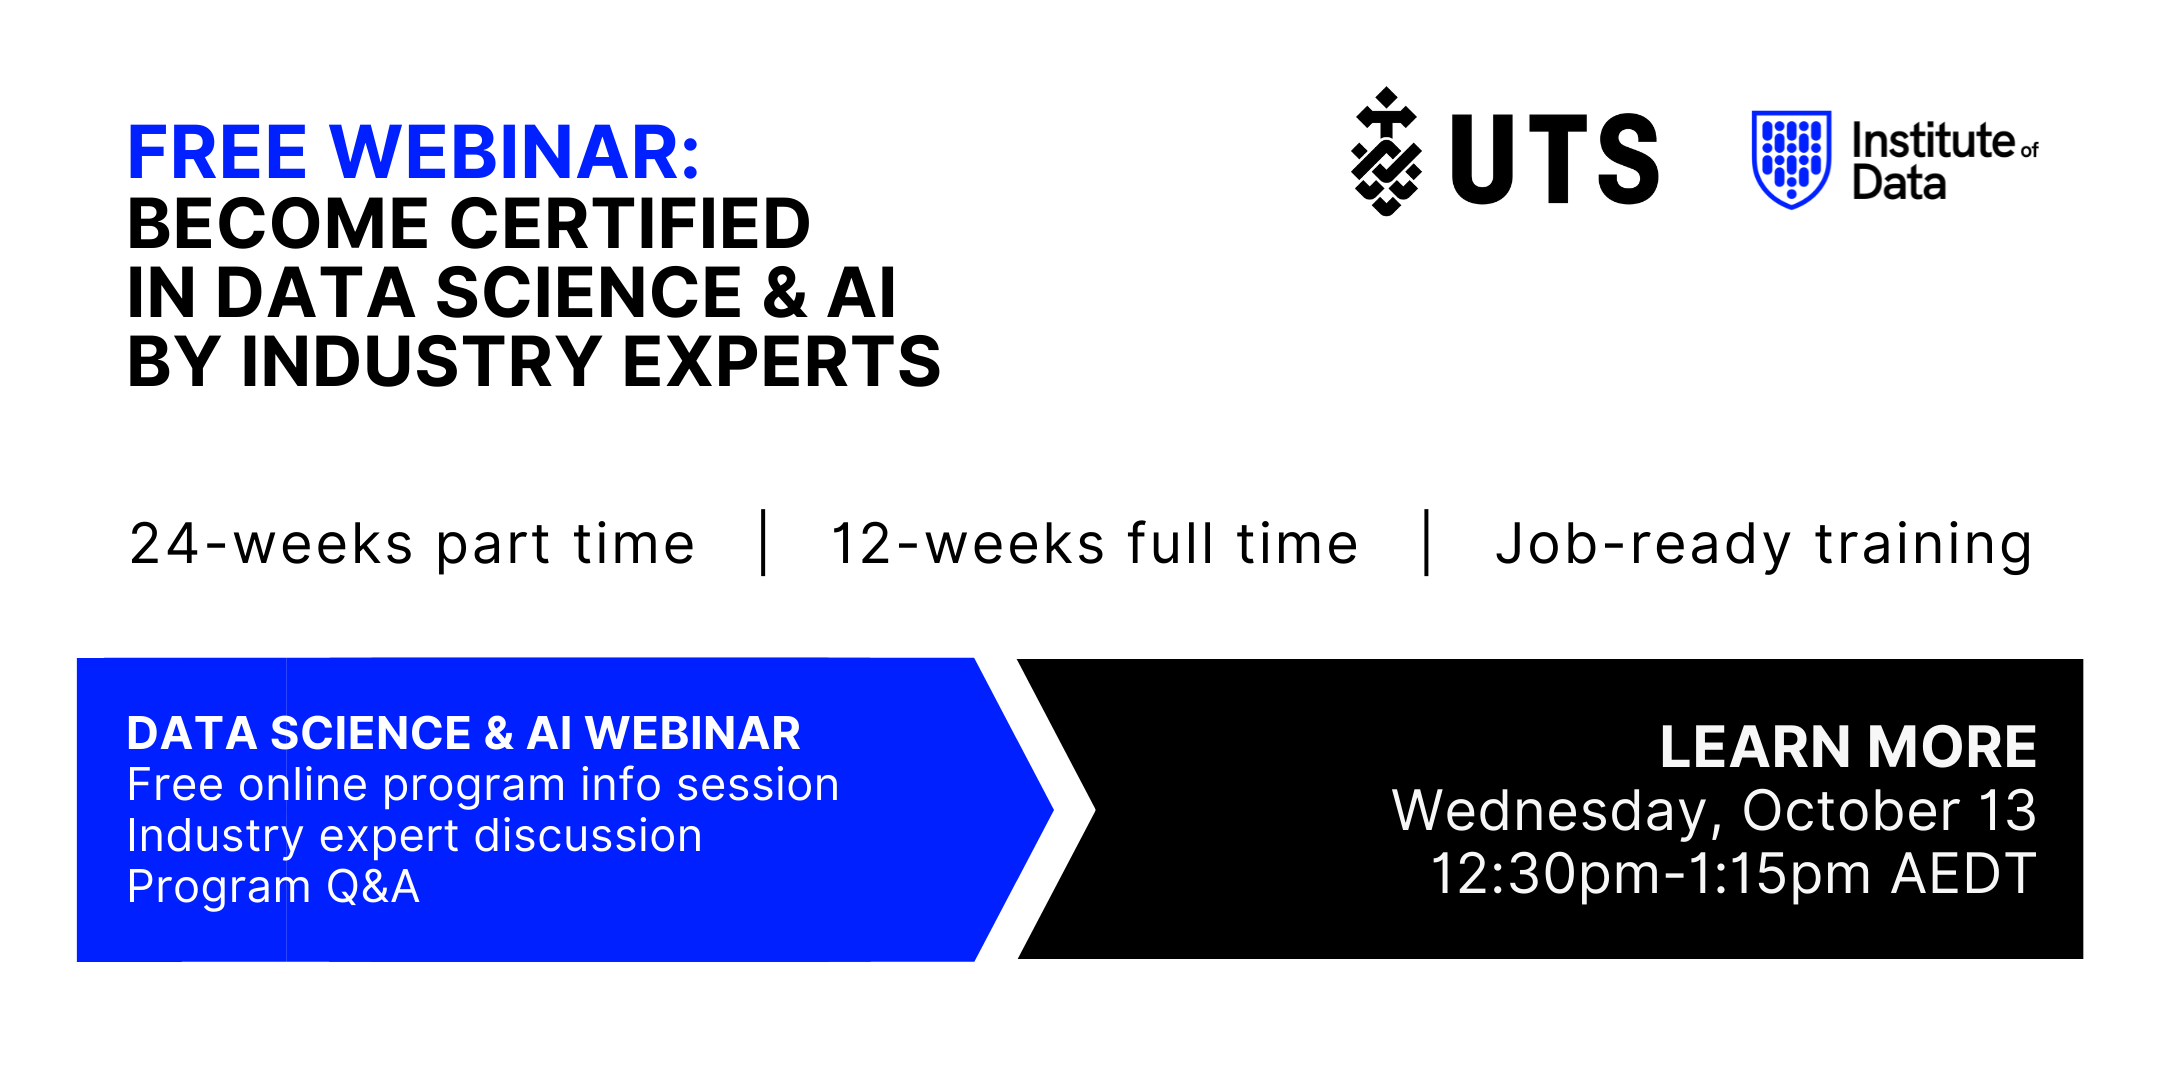 Institute of Data UTS - Data Science and AI Program - Online Info Session - October 13 2021